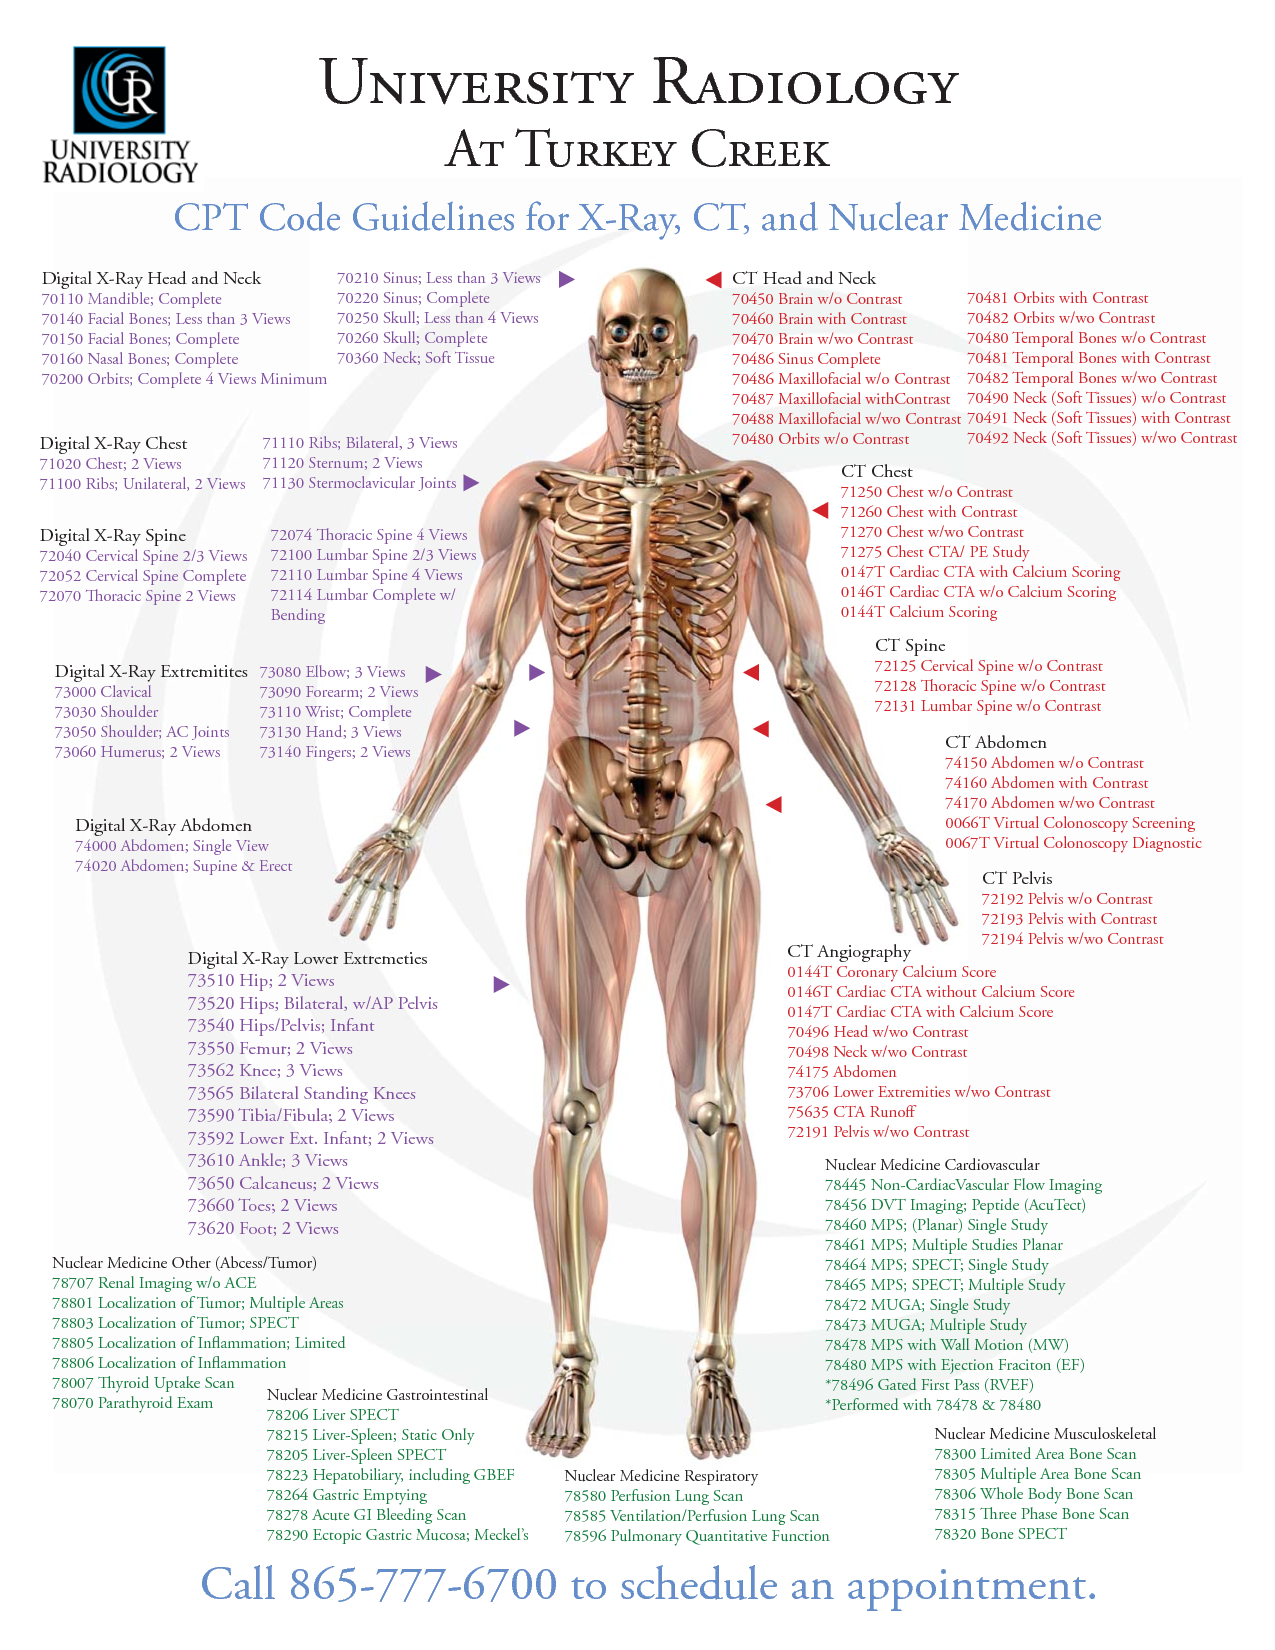 University radiology at turkey creek cpt code guidelines anatomy nursing students fandeluxe